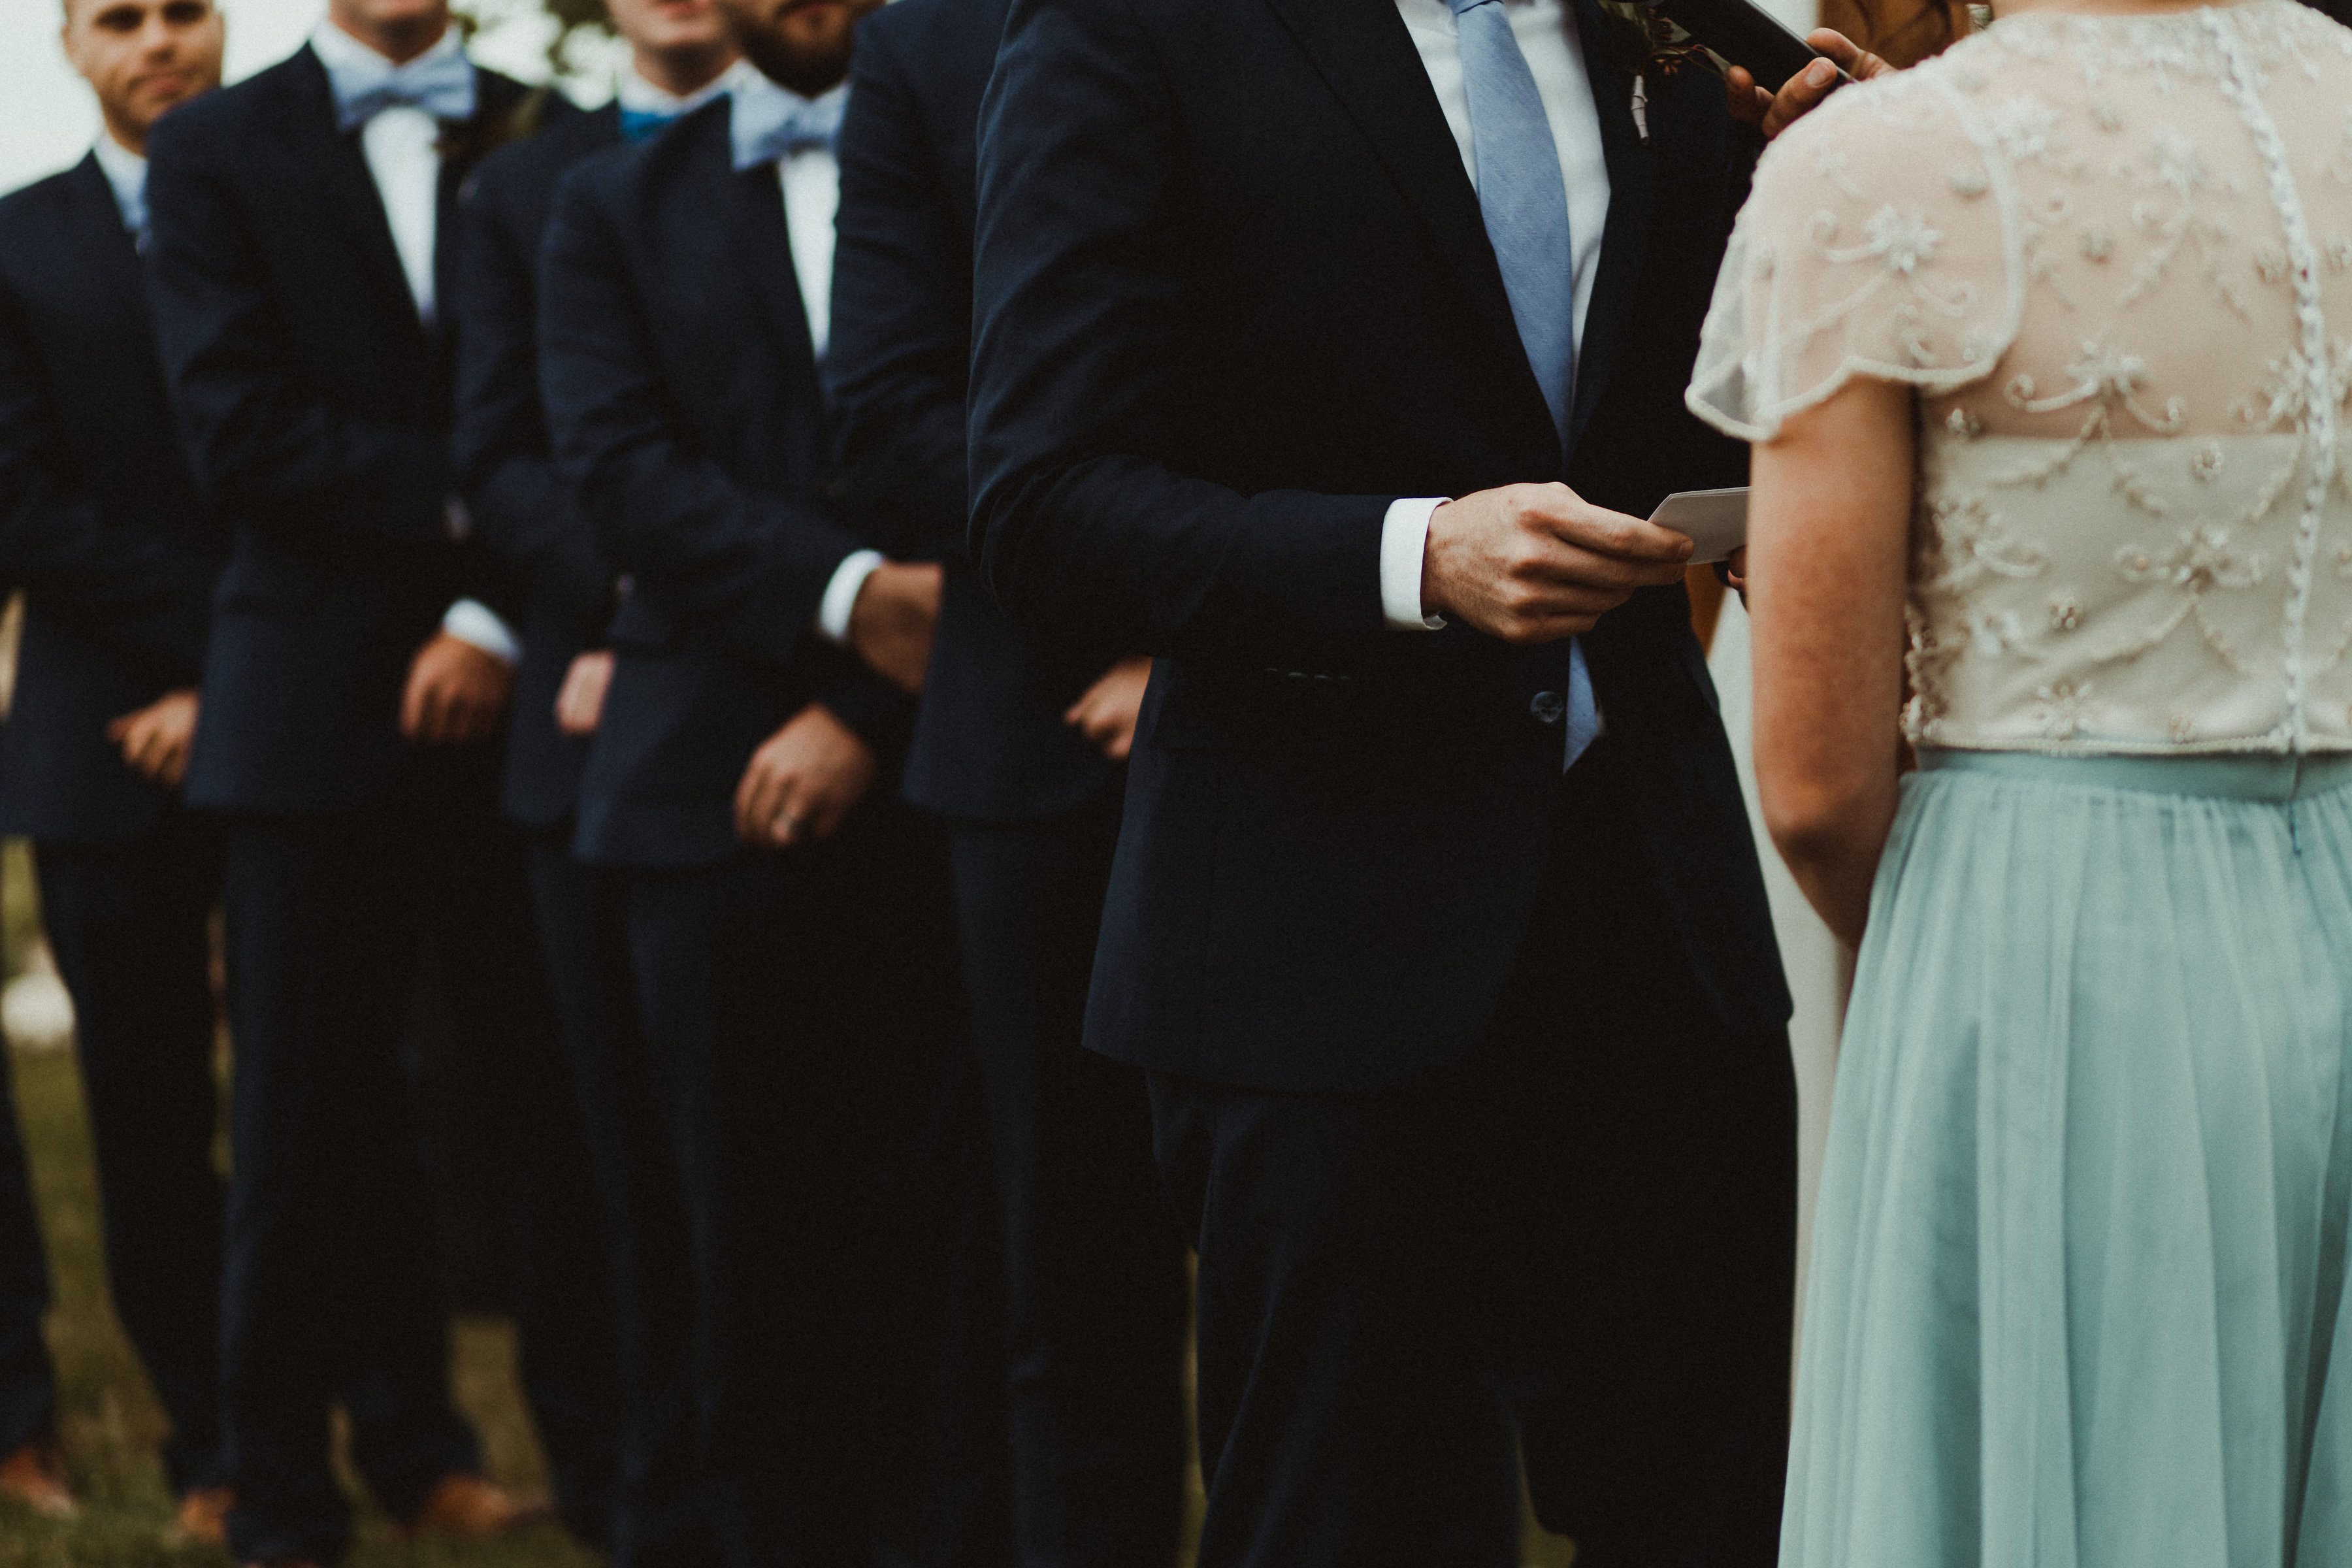 Groomsmen in suits stand by as the groom and bride in blue get married